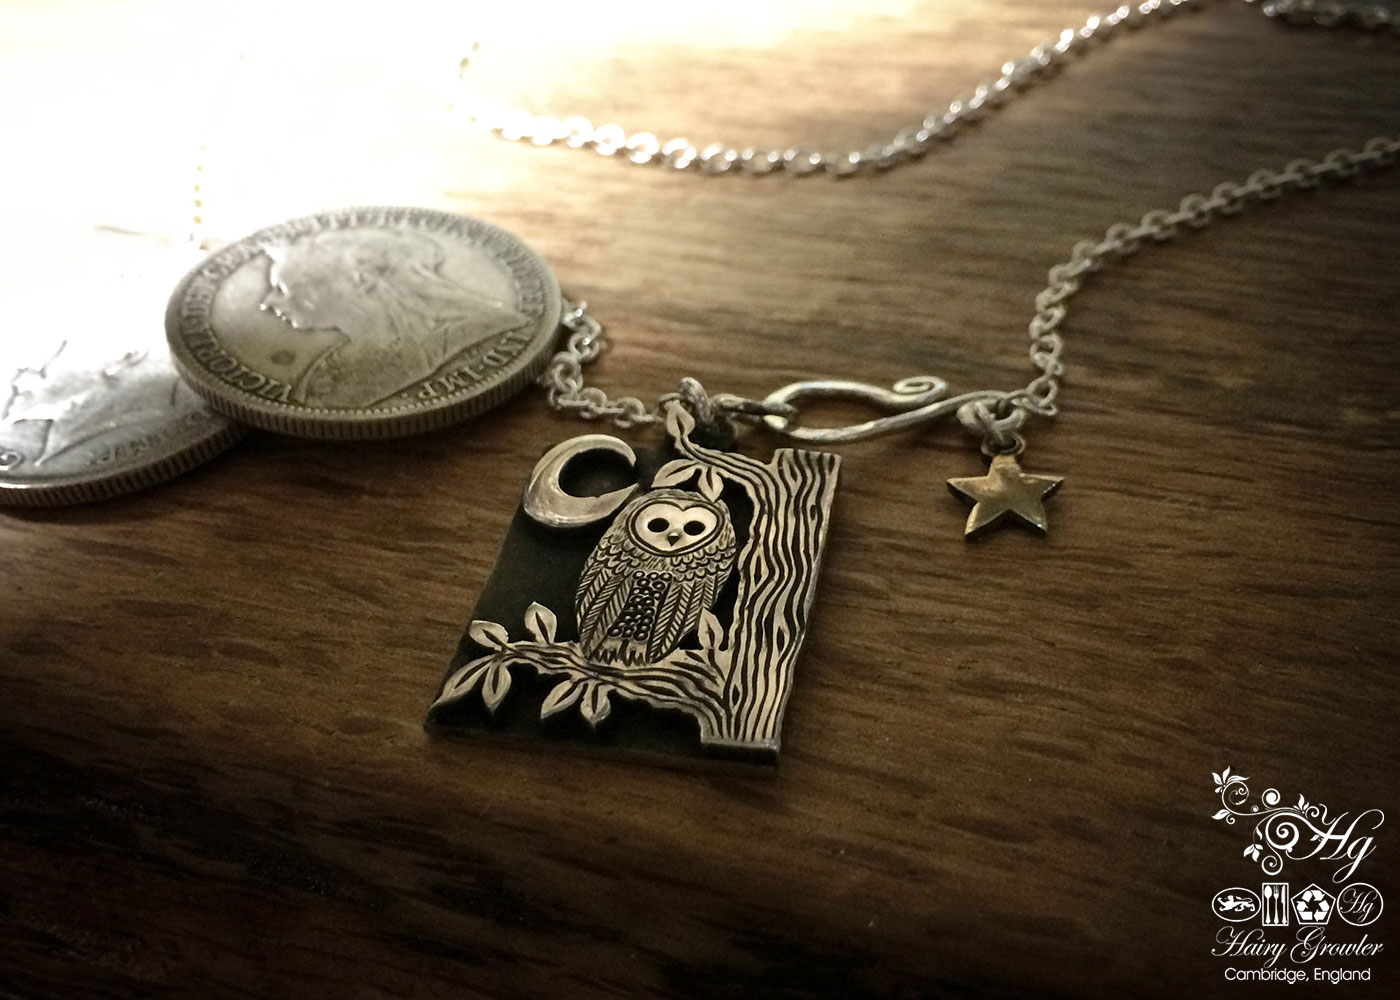 The owl in the tree silver coin necklace